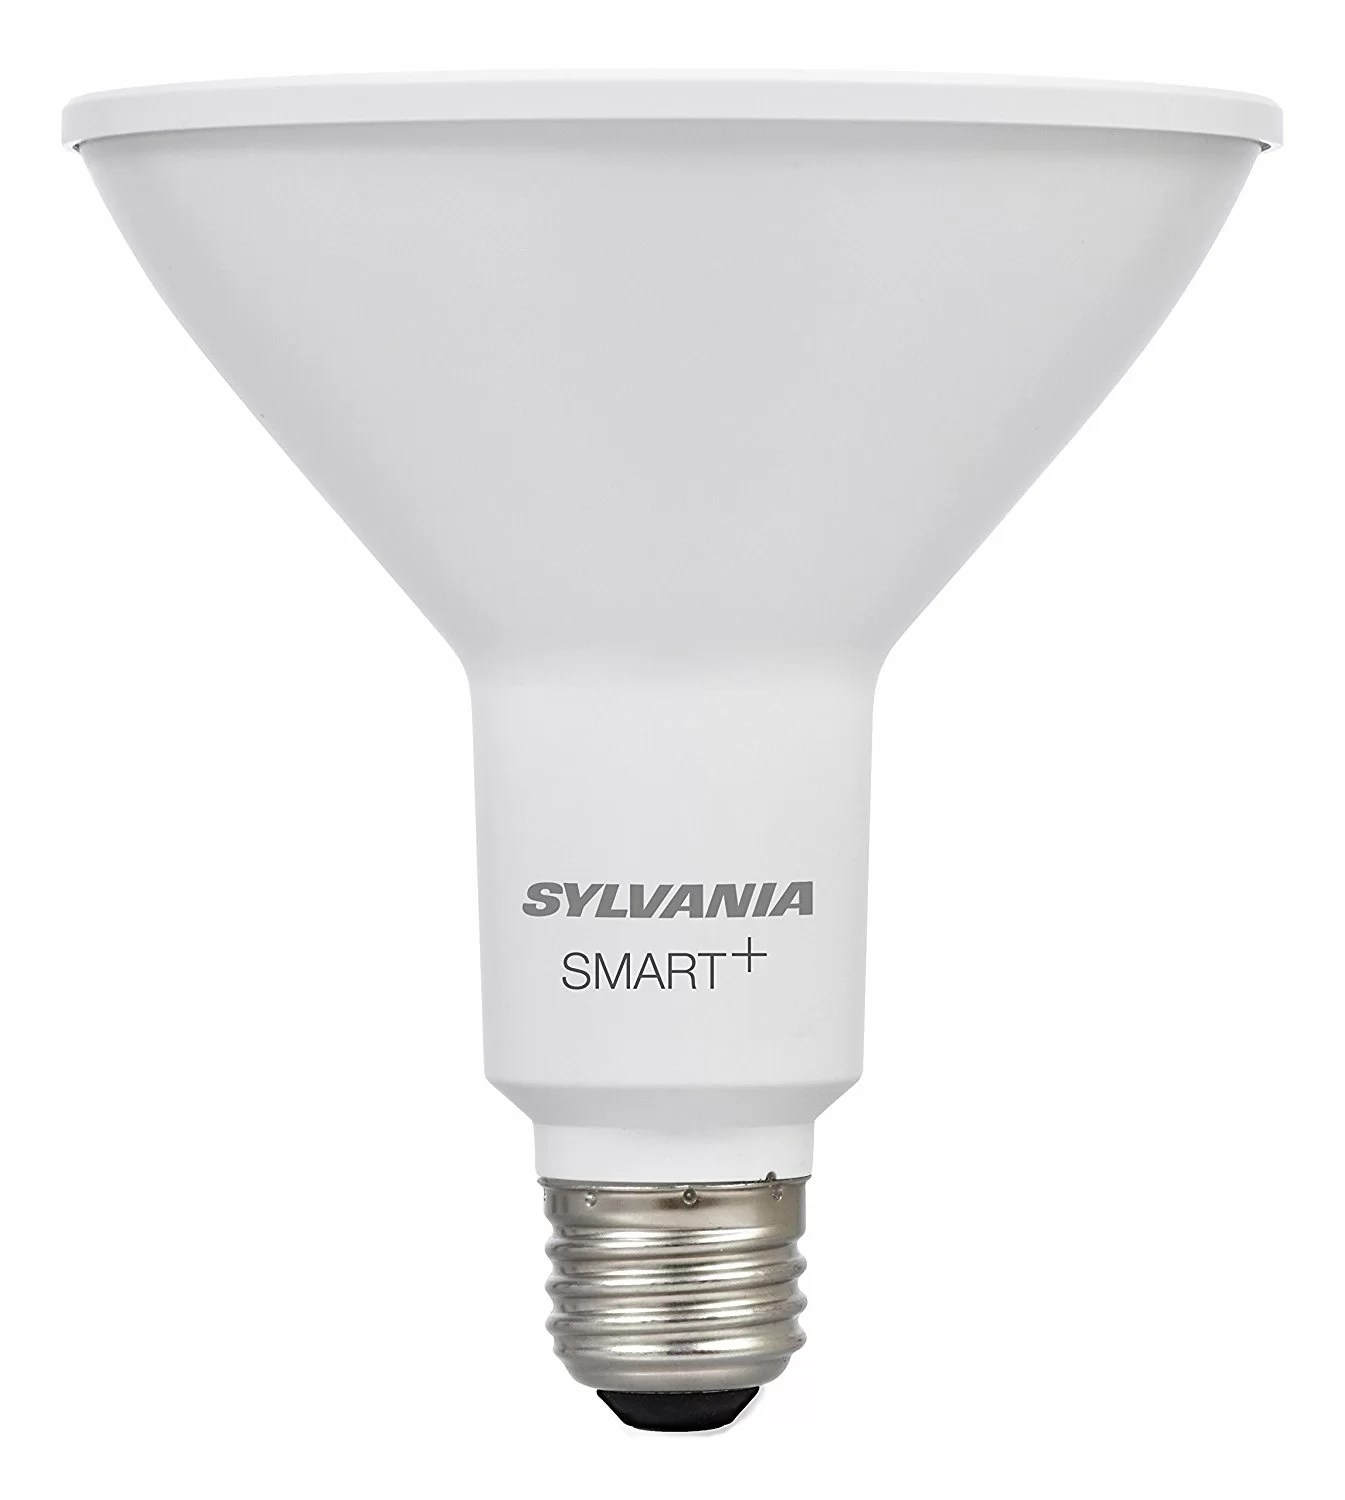 Smart Led Bulb 13 Watt 120 Watt Equivalent Par38 Led Smart Light Bulb Warm White 3000k E26 Medium Standard Base